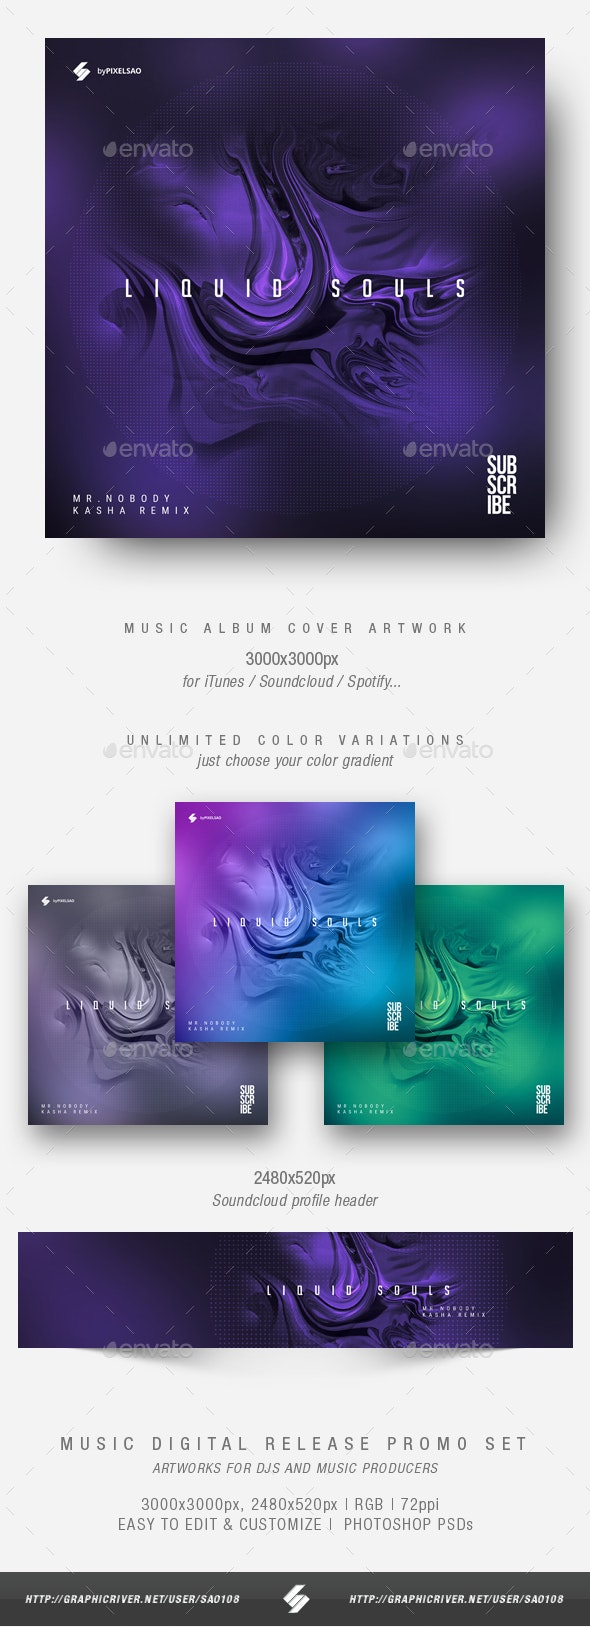 Liquid Souls - Minimal Album Cover Artwork Template - Miscellaneous Social Media